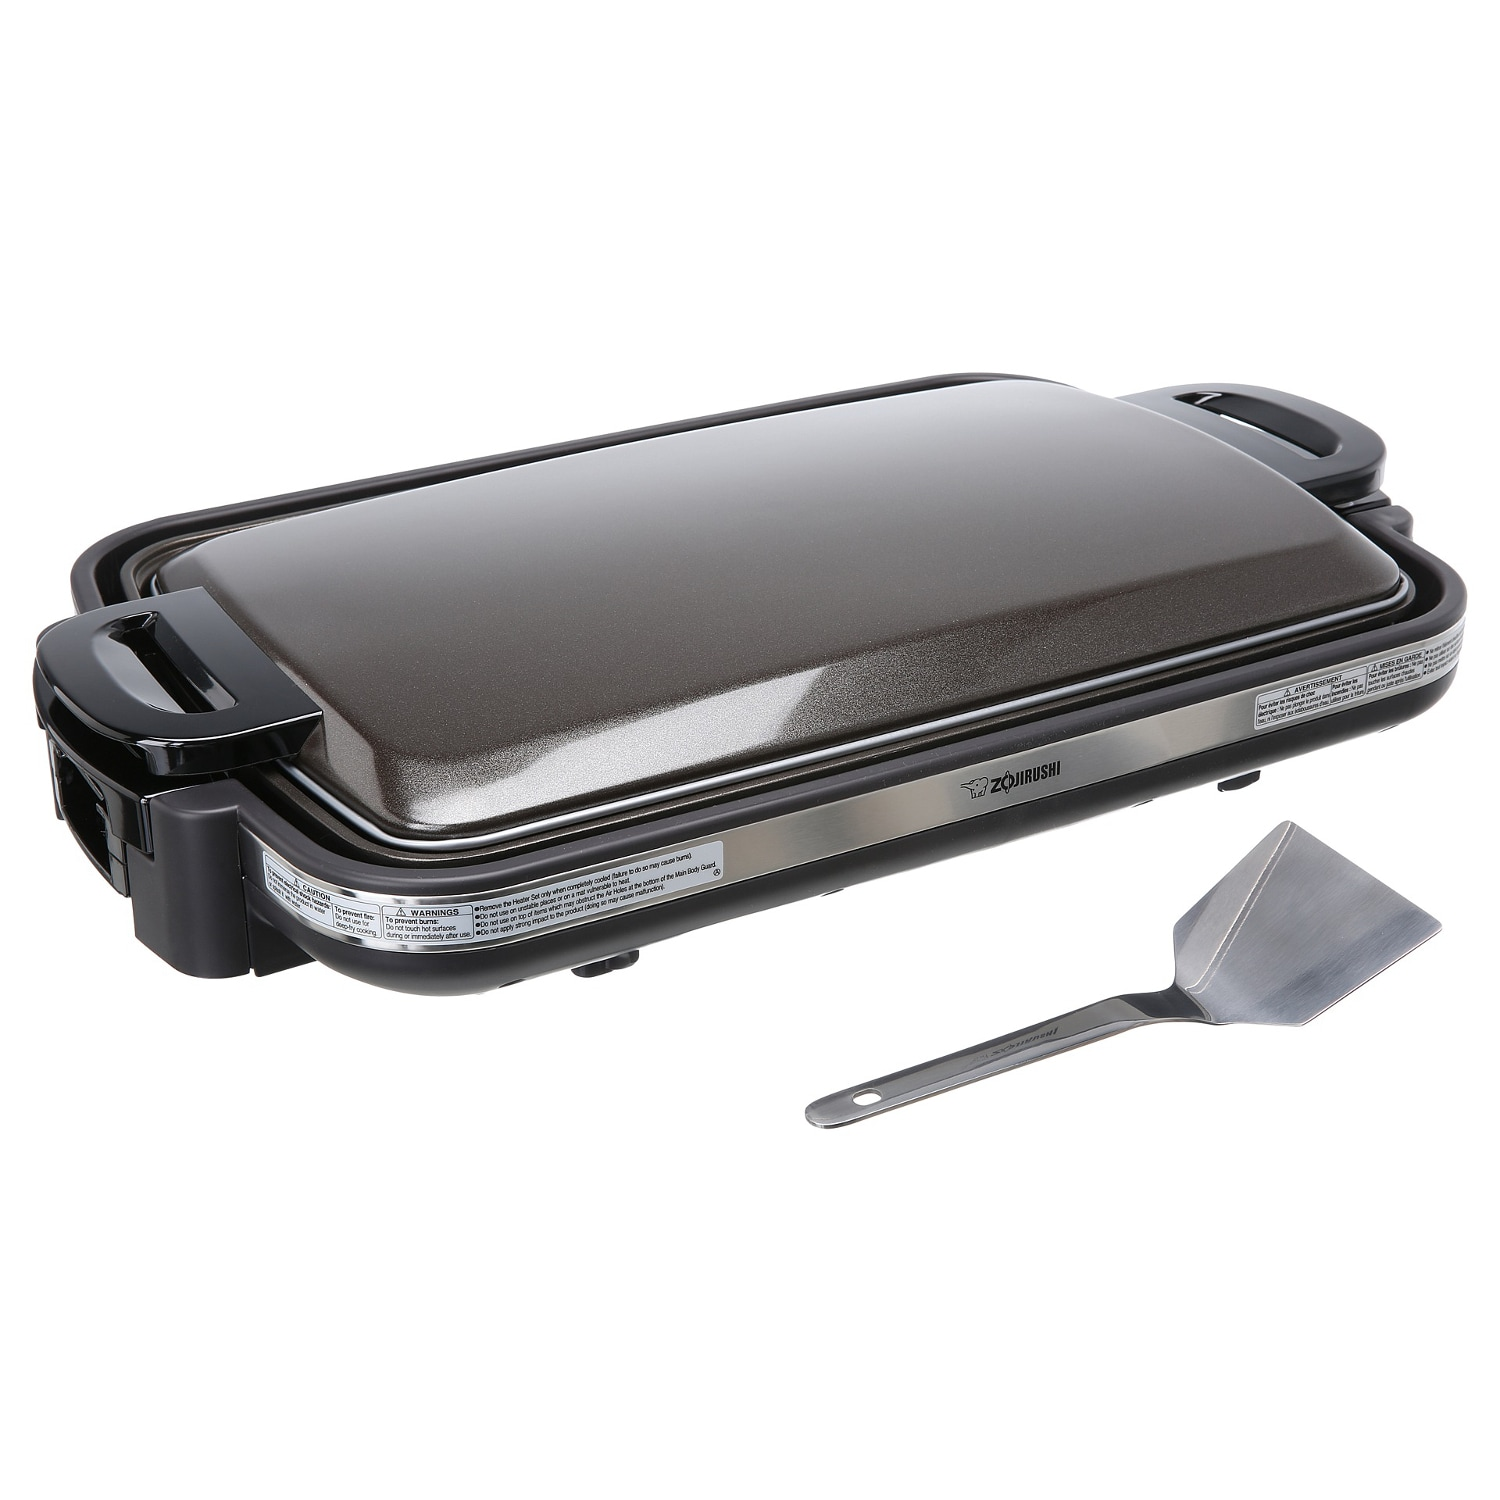 Zojirushi Gourmet Sizzler Electric Griddle, Brown (Aluminum)